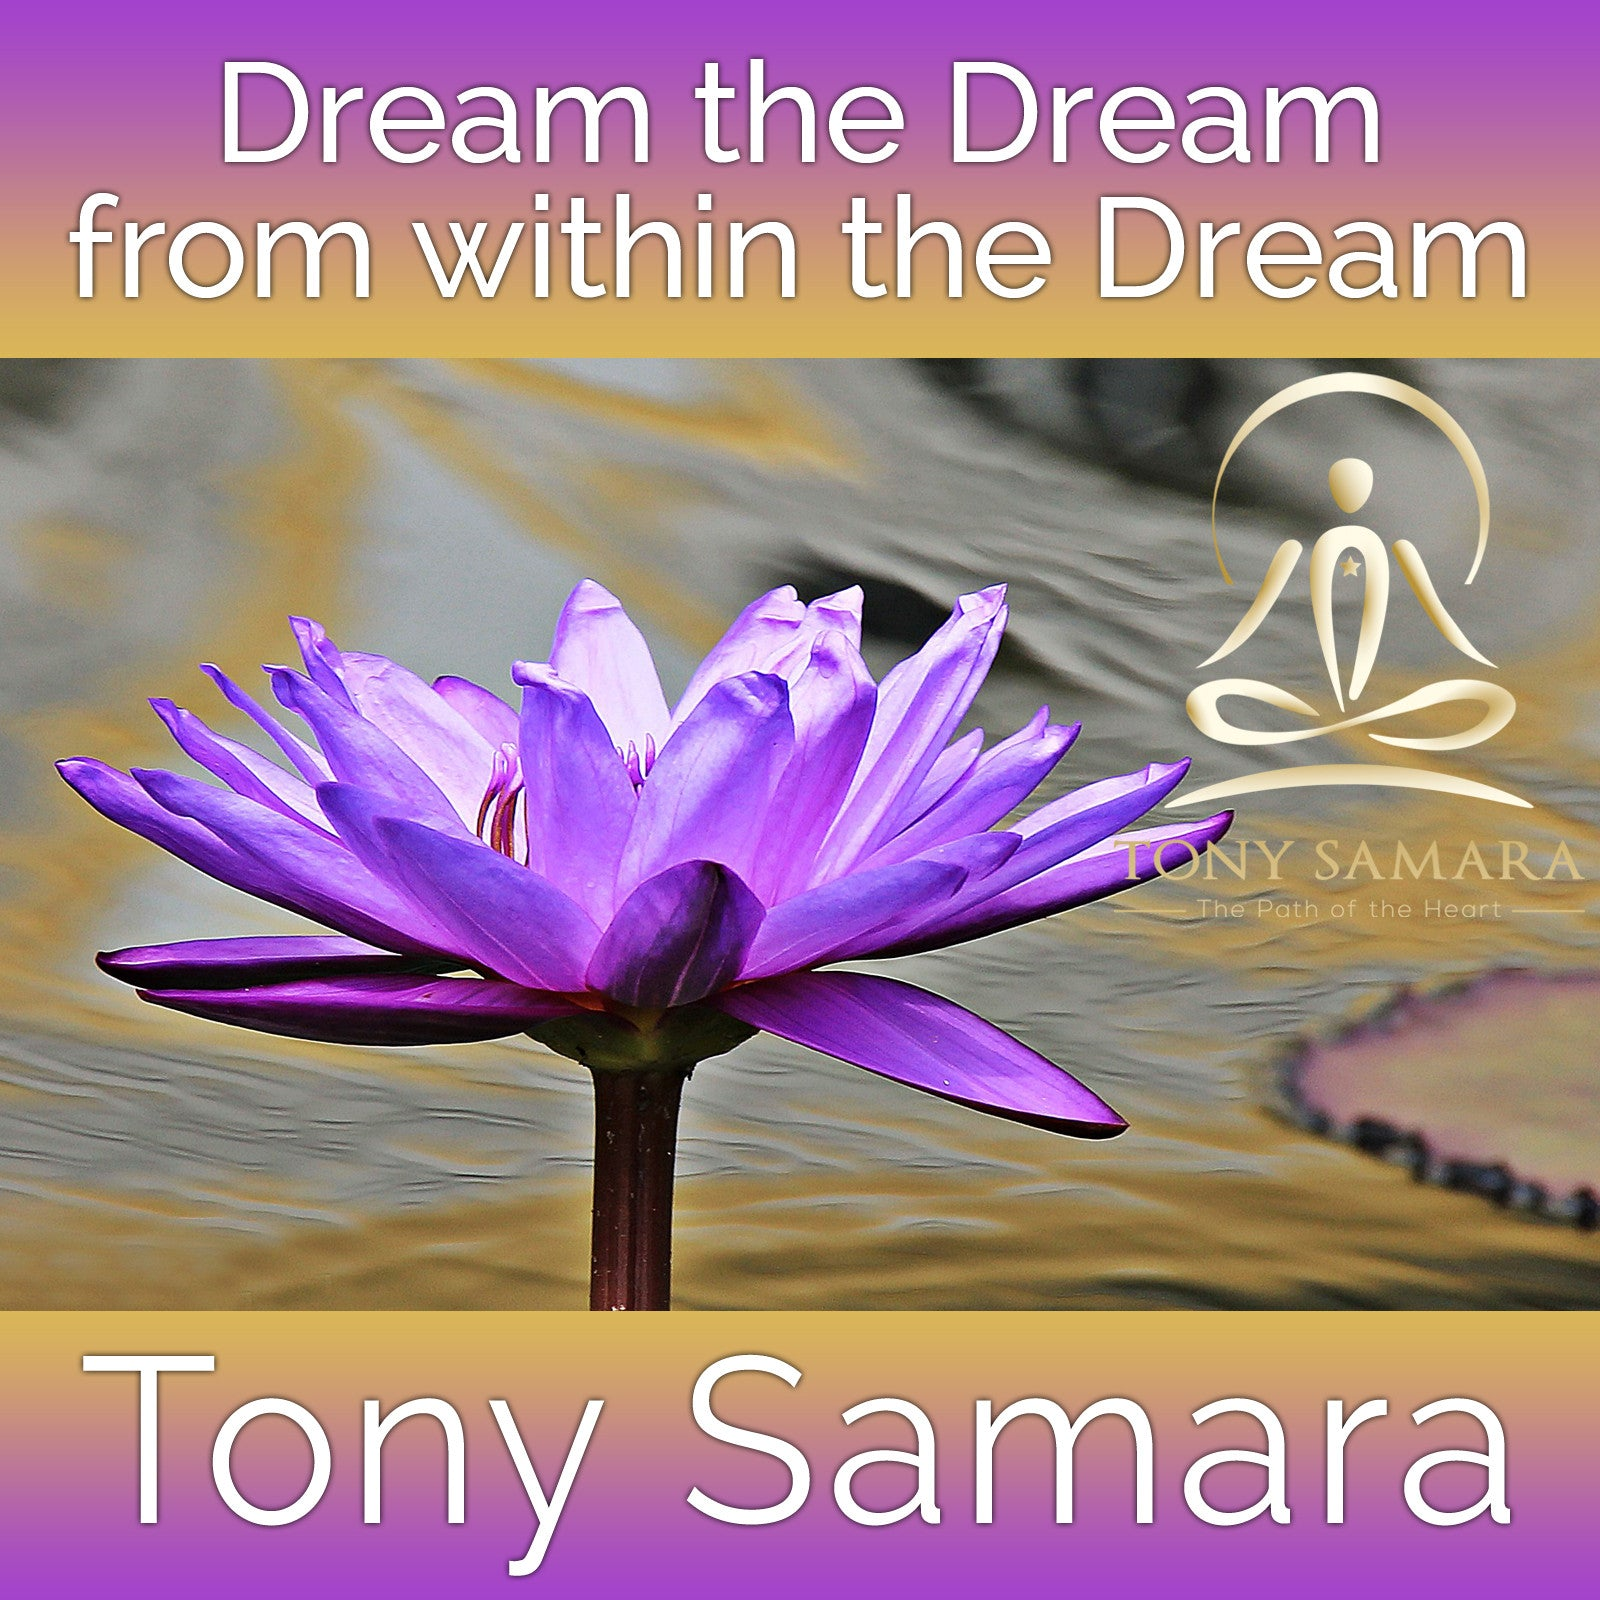 Dream the Dream from within the Dream (MP3 Audio Download) - Tony Samara Meditation